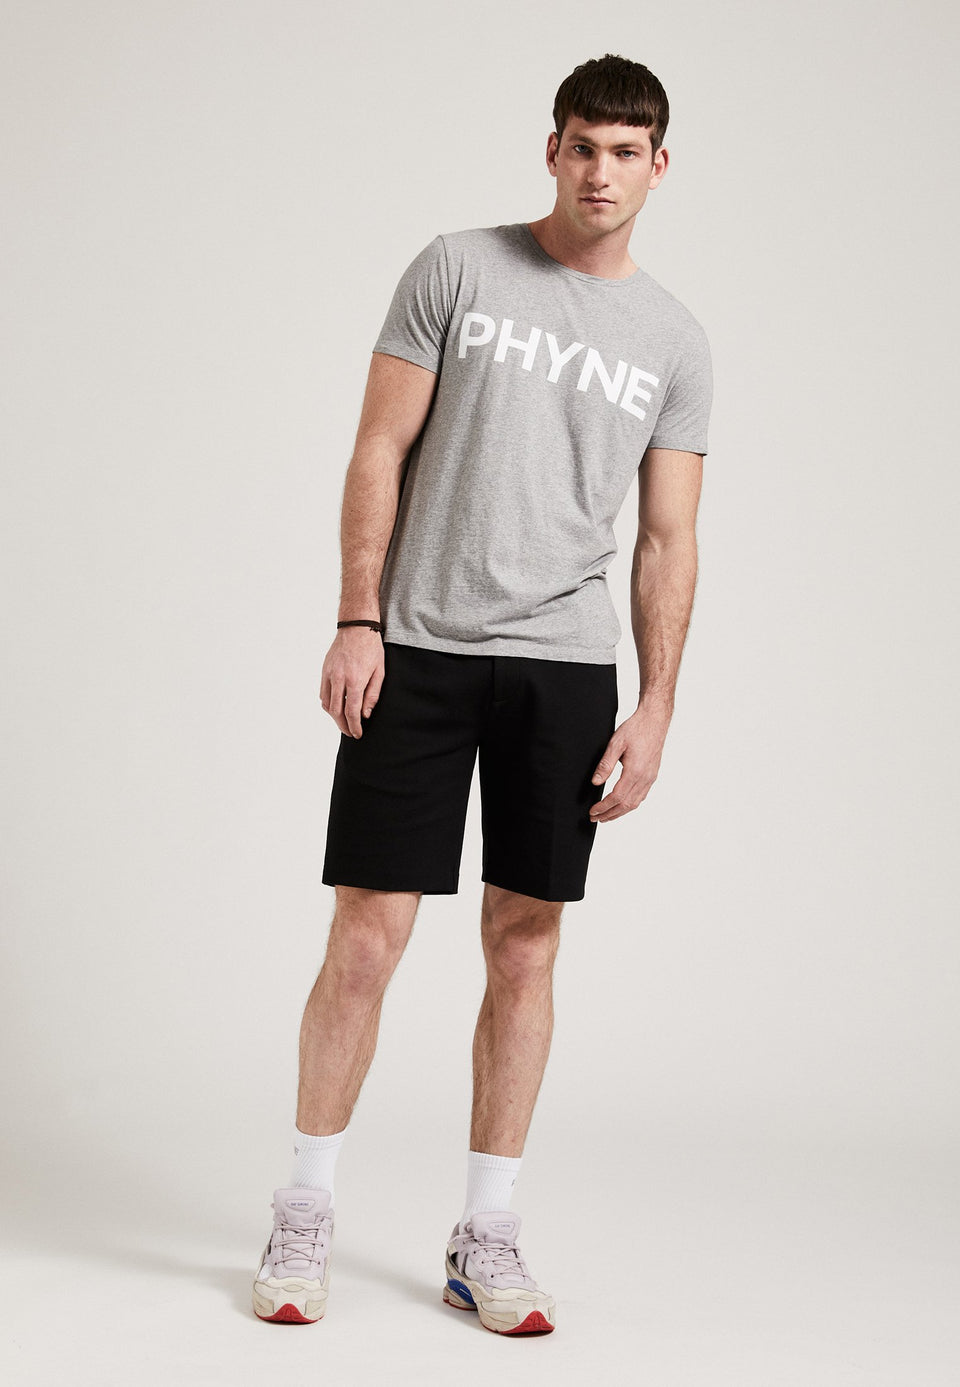 The PHYNE T-Shirt